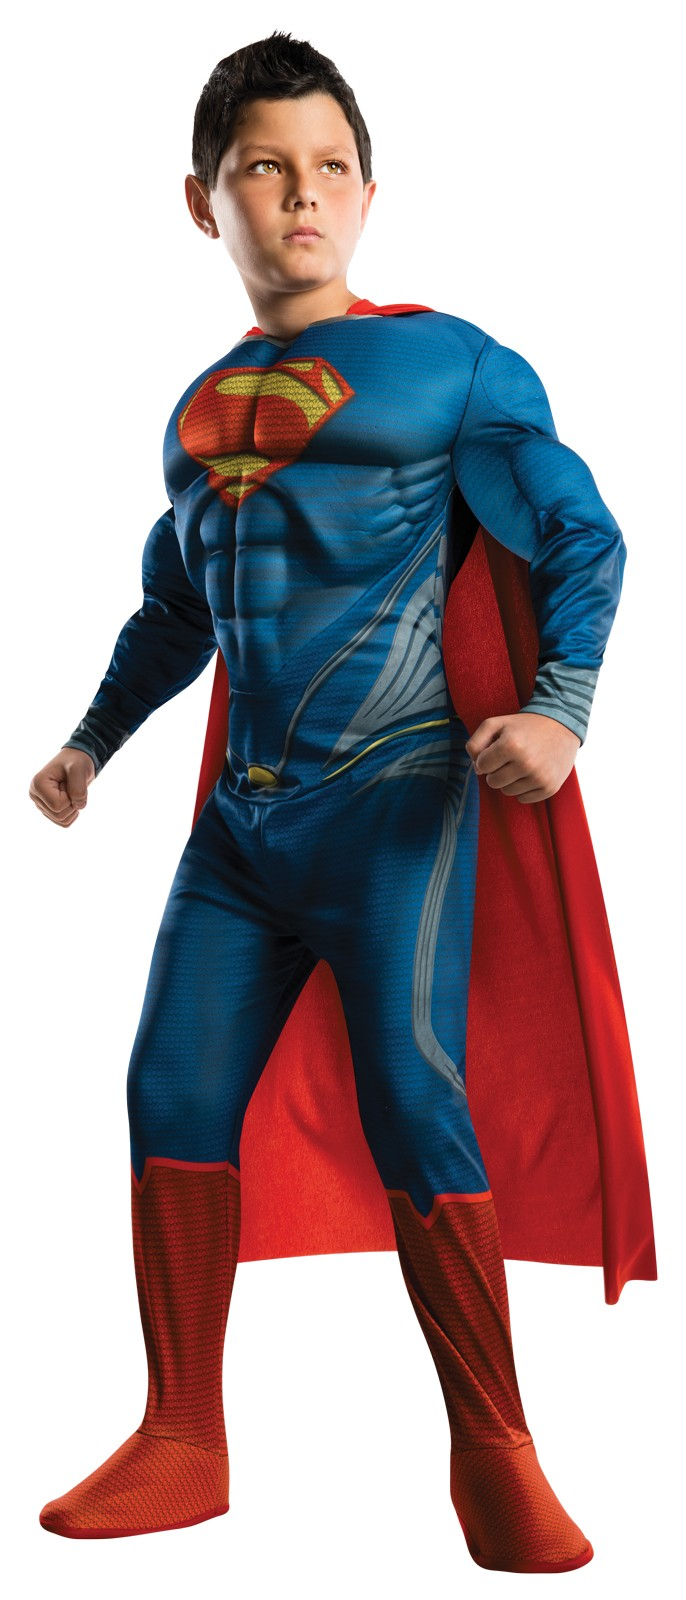 Superman Man of Steel Deluxe Toddler / Child Costume.jpg  sc 1 st  Costumes.com.au & Superman Man of Steel Deluxe Toddler / Child Costume | Costumes.com.au